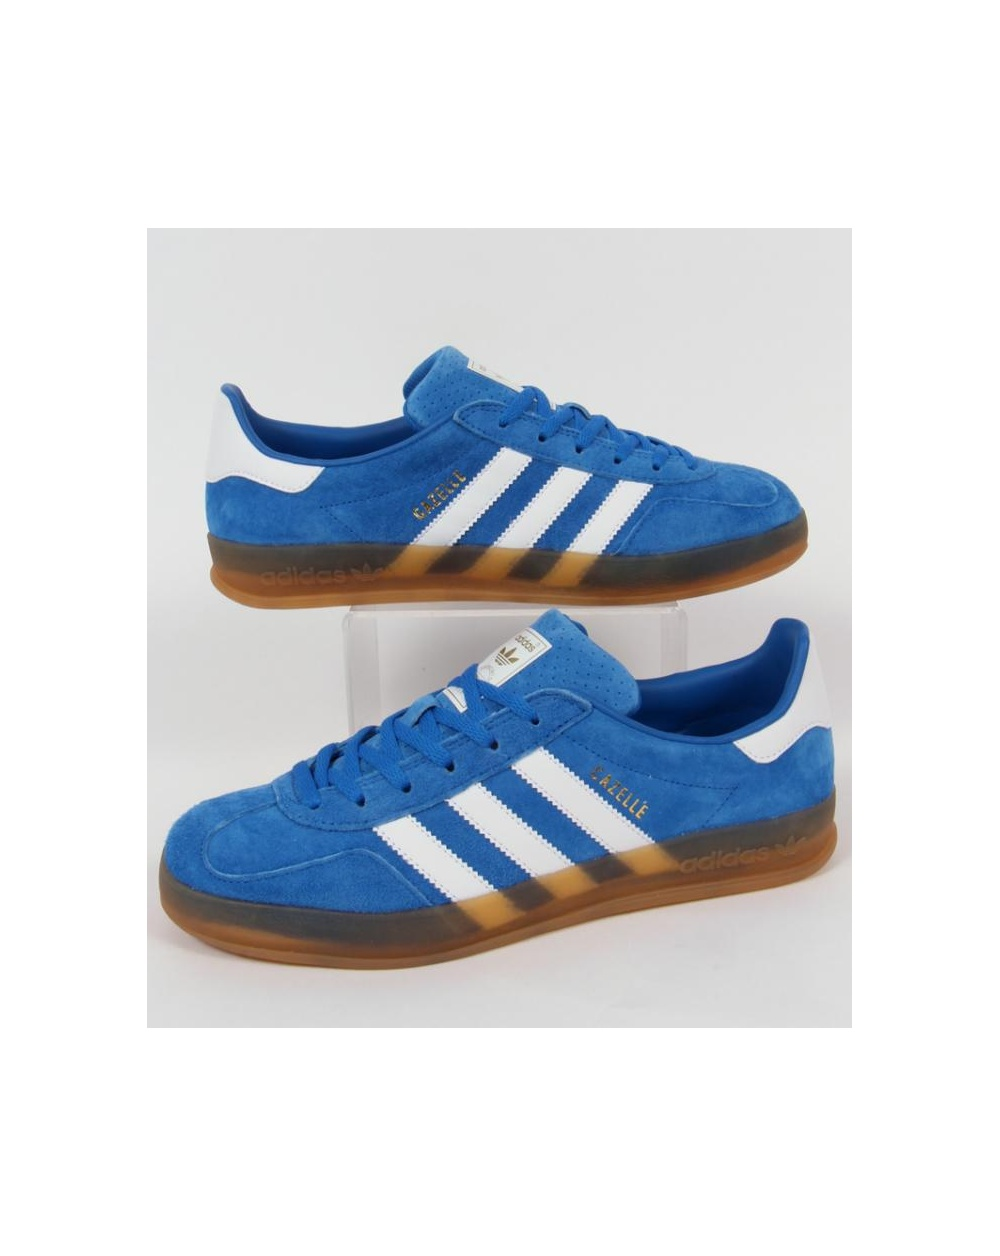 adidas Trainers Adidas Gazelle Indoor Trainers Bluebird Blue white e741effa1